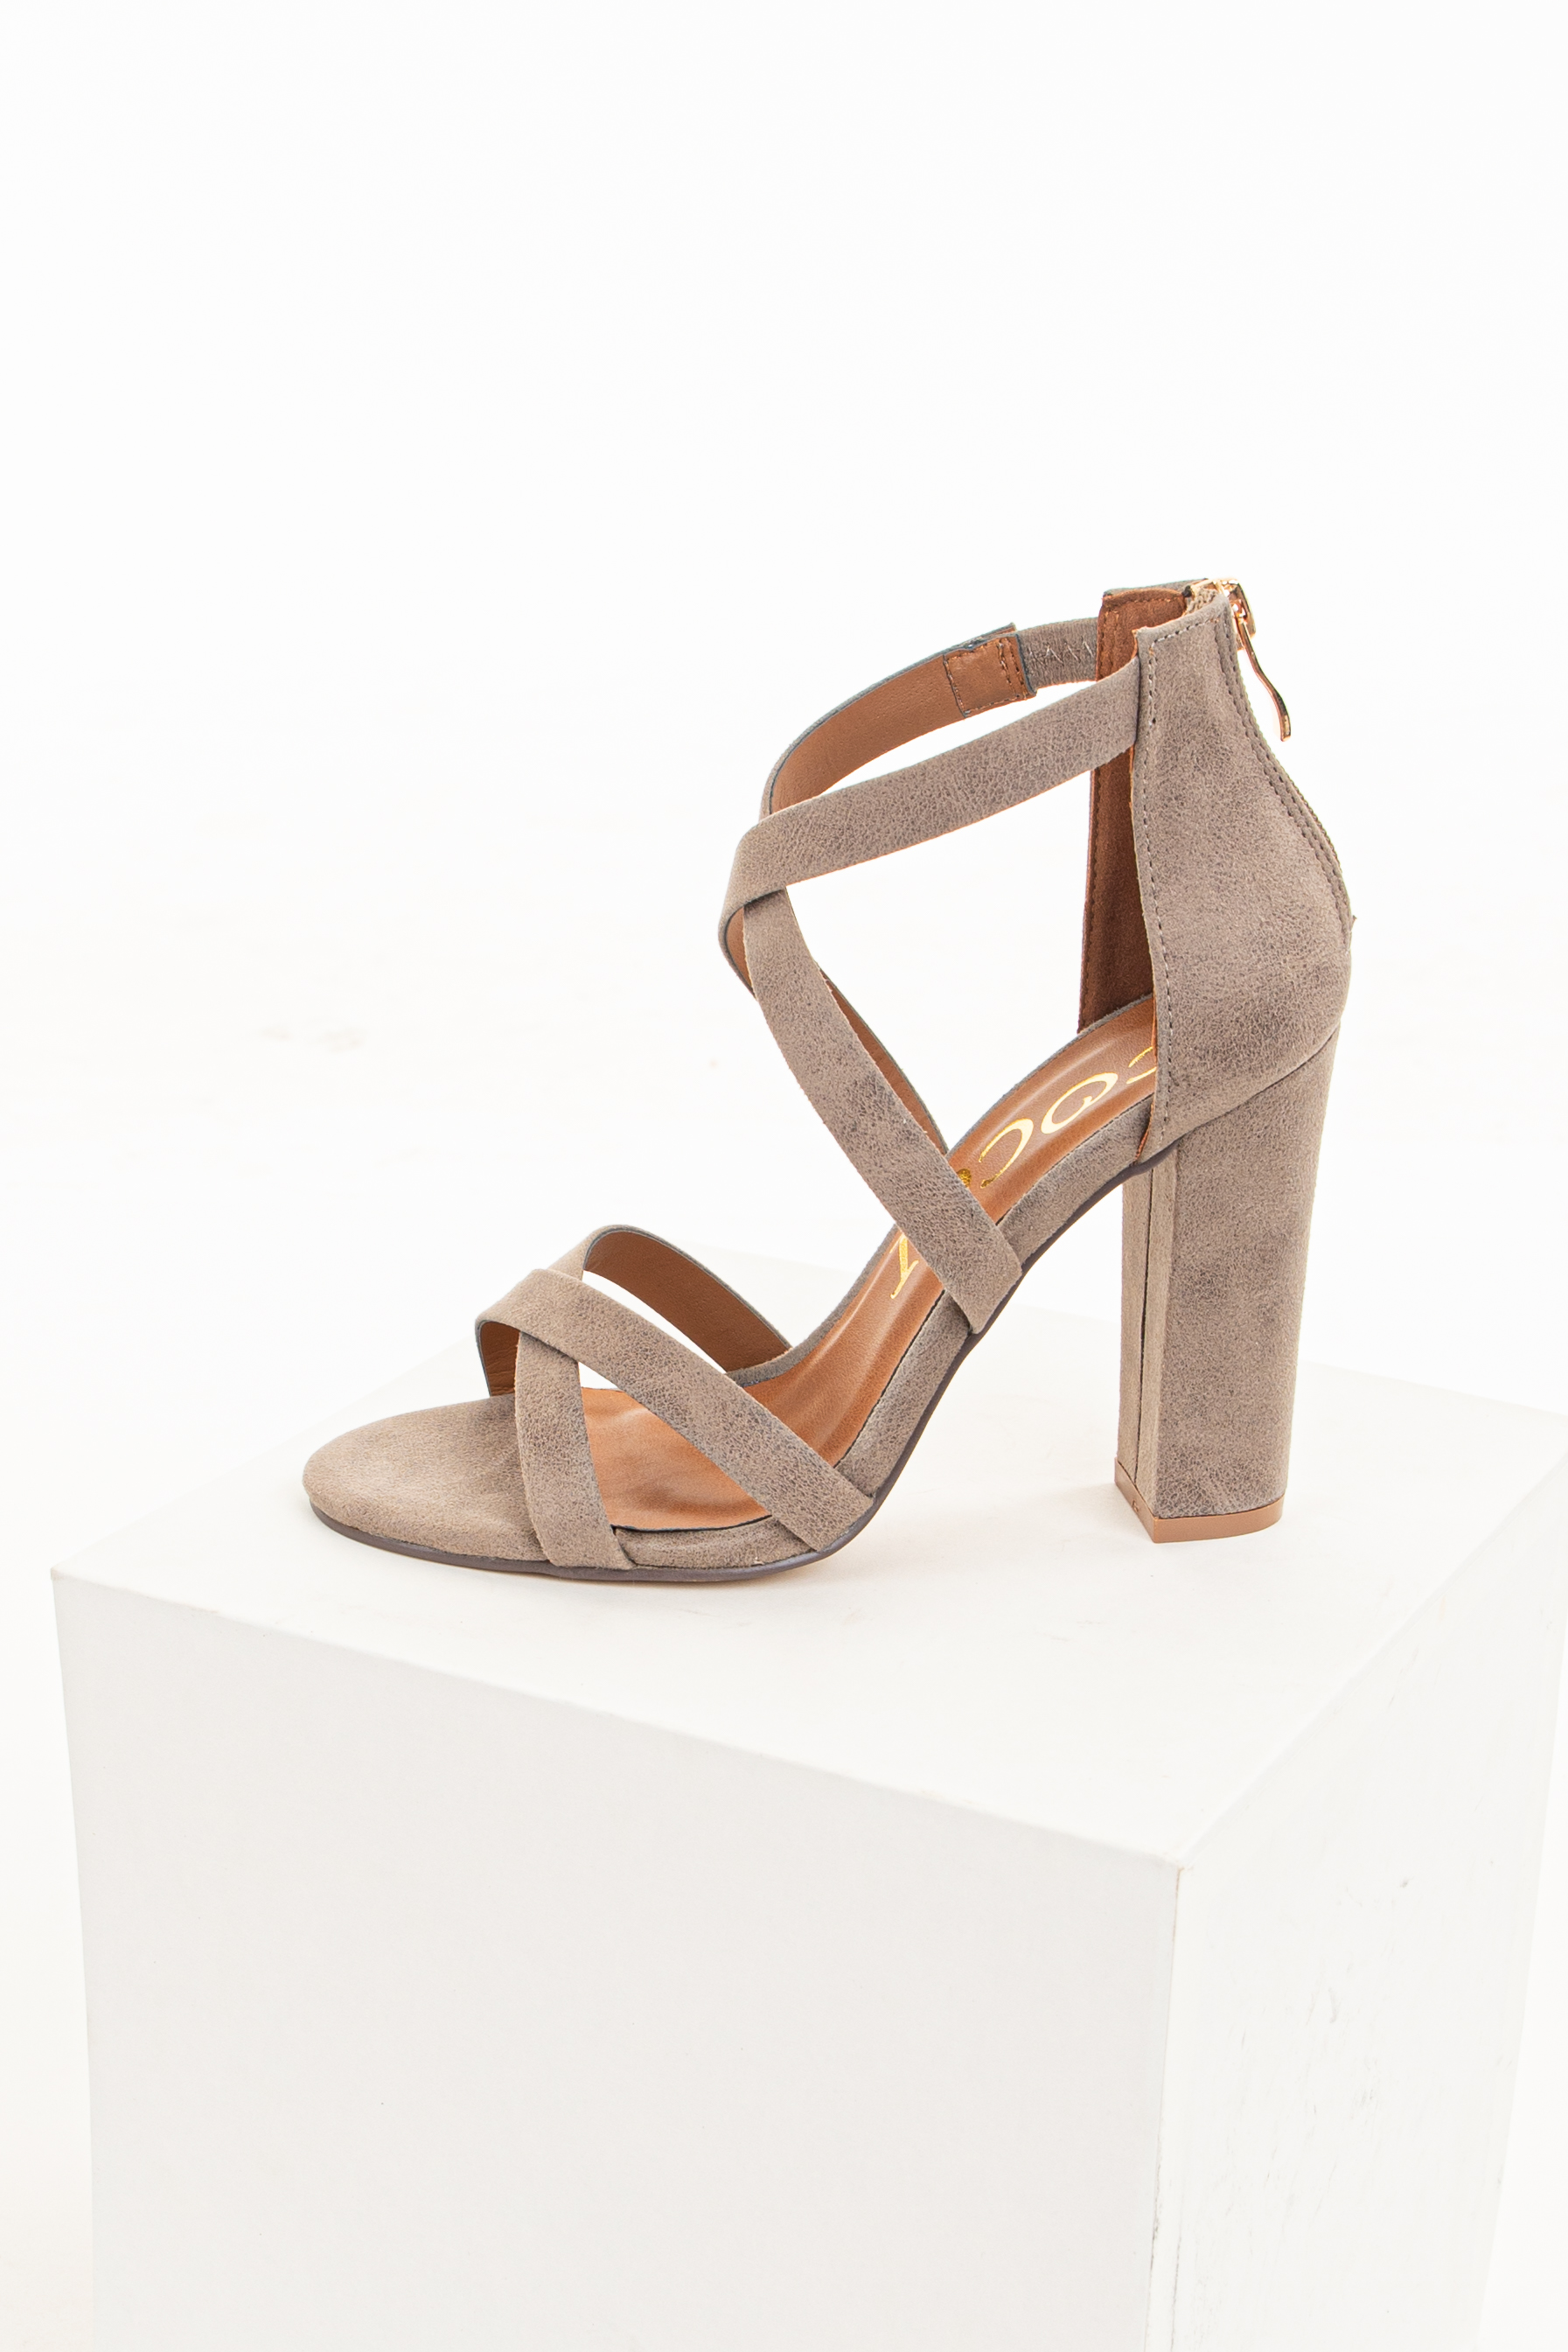 Taupe Criss Cross Strappy High Heels with Zipper Closure